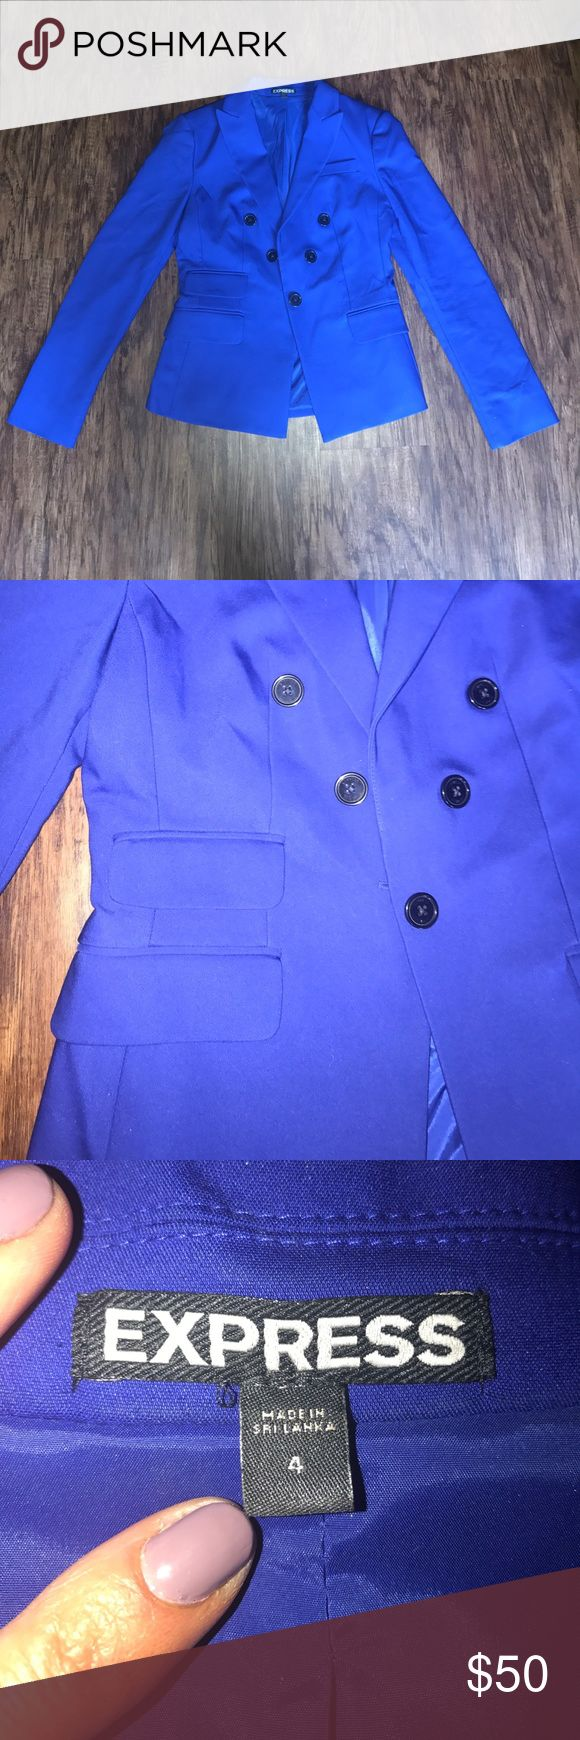 Express Royal Blue Blazer Size 4 size 4 blazer from express. can be matched with dress pants or over a dress to go out! royal blue coloring with black buttons. worn once. dry cleaned again after the picture was taken Express Jackets & Coats Blazers